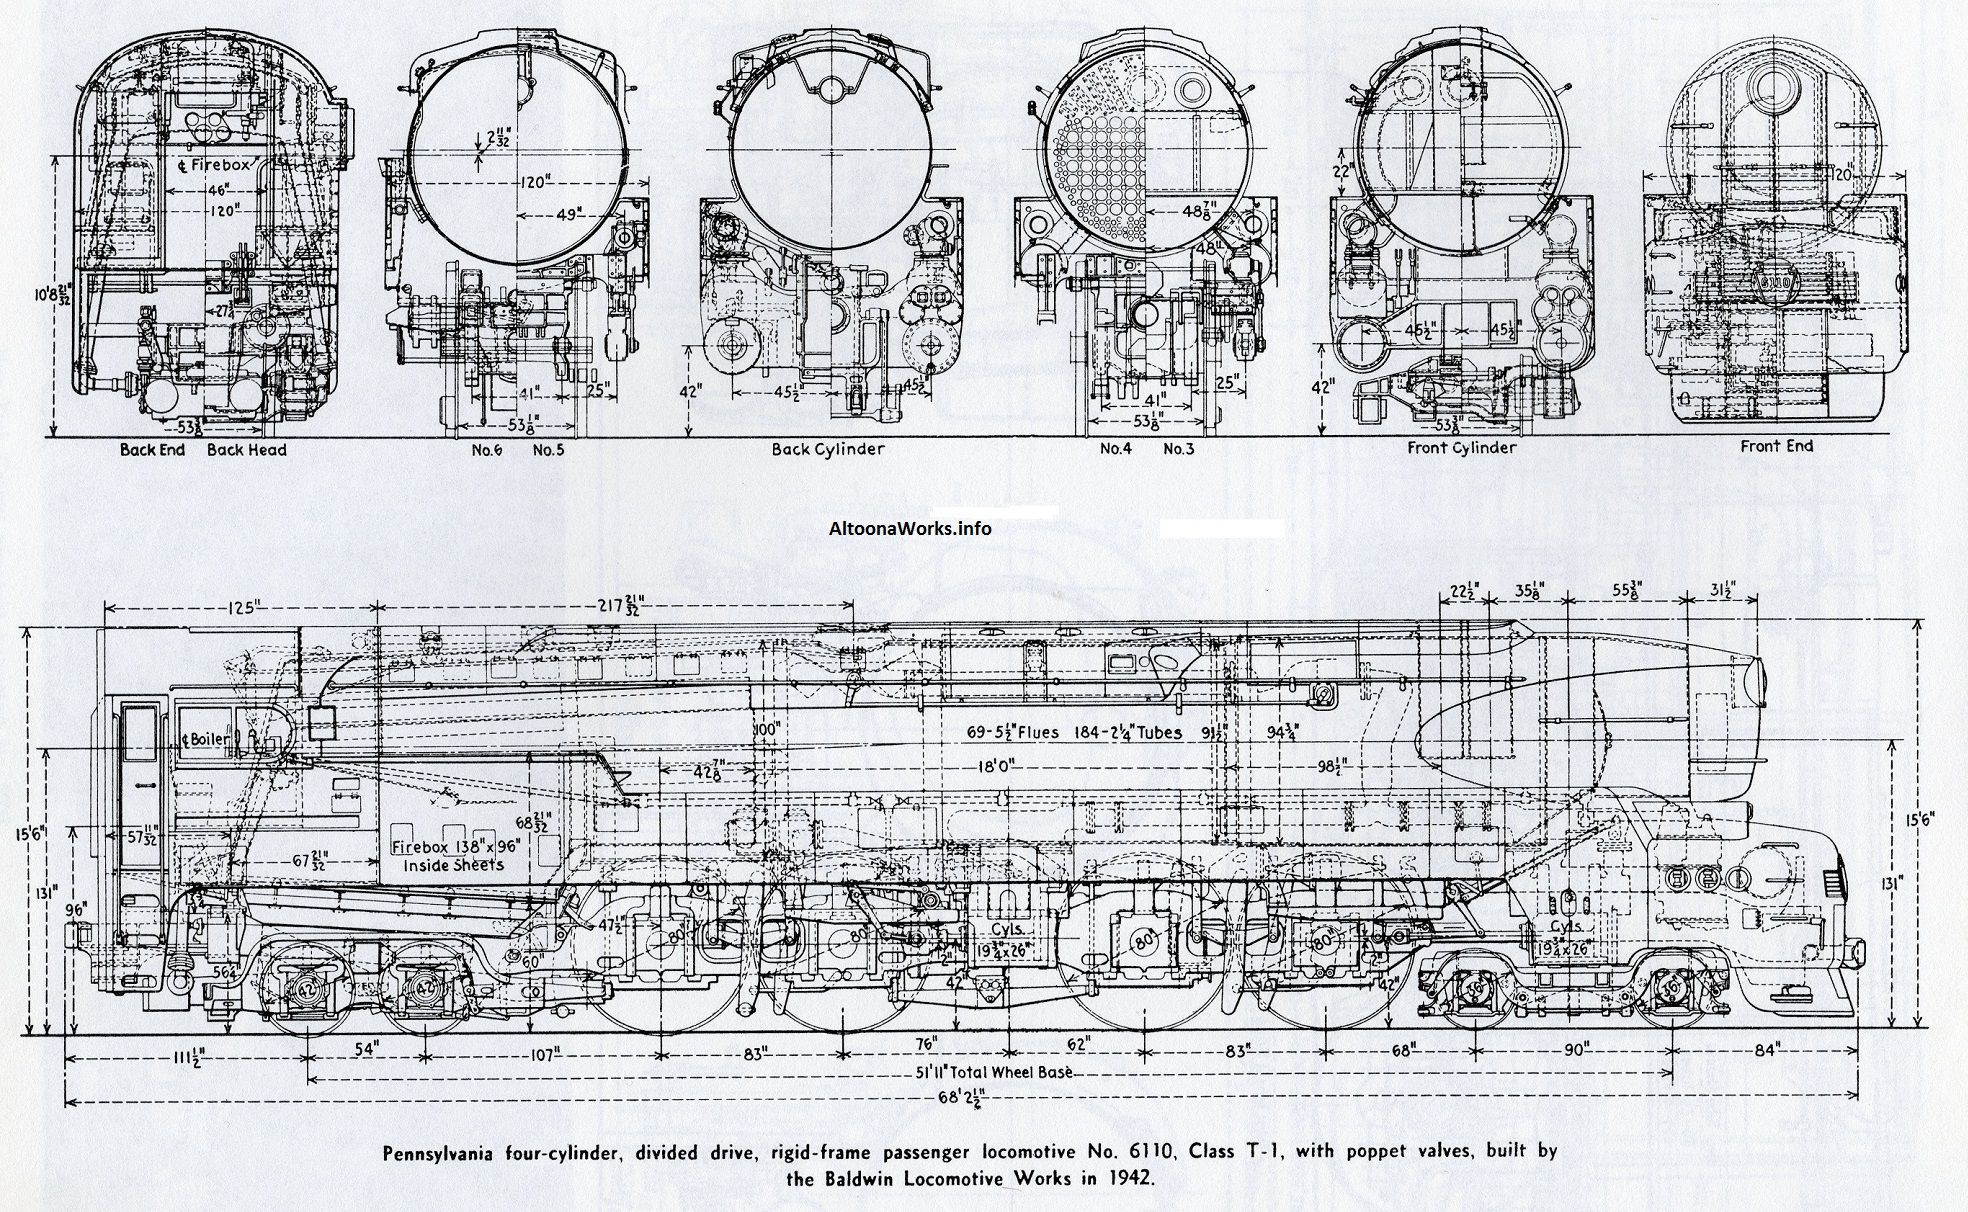 small resolution of pennsylvania t 1 4 4 4 4 baldwin 1942 locomotive cutaways prr barge diagram